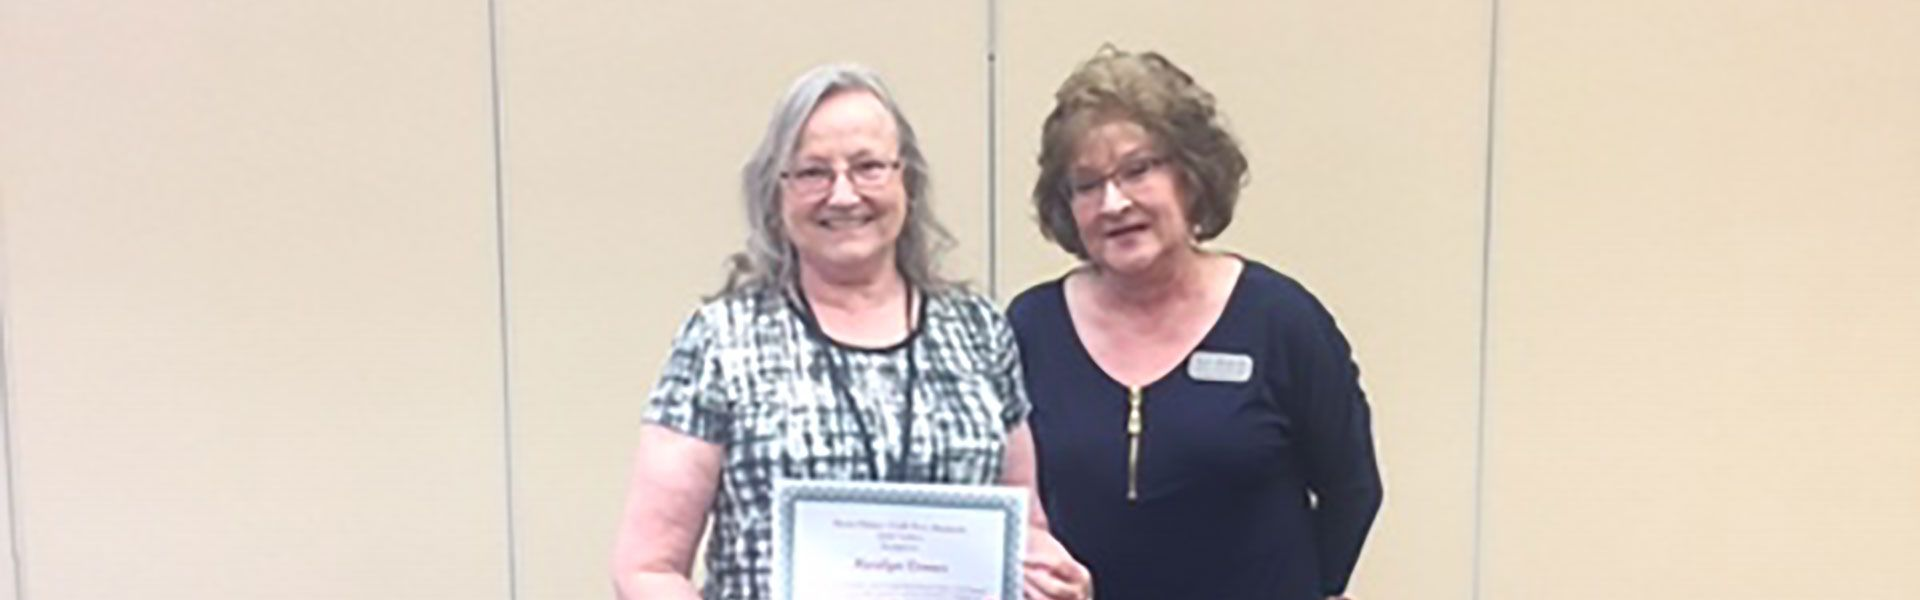 Honoring Marilyn Conner, Paraprofessional at Lebanon High School